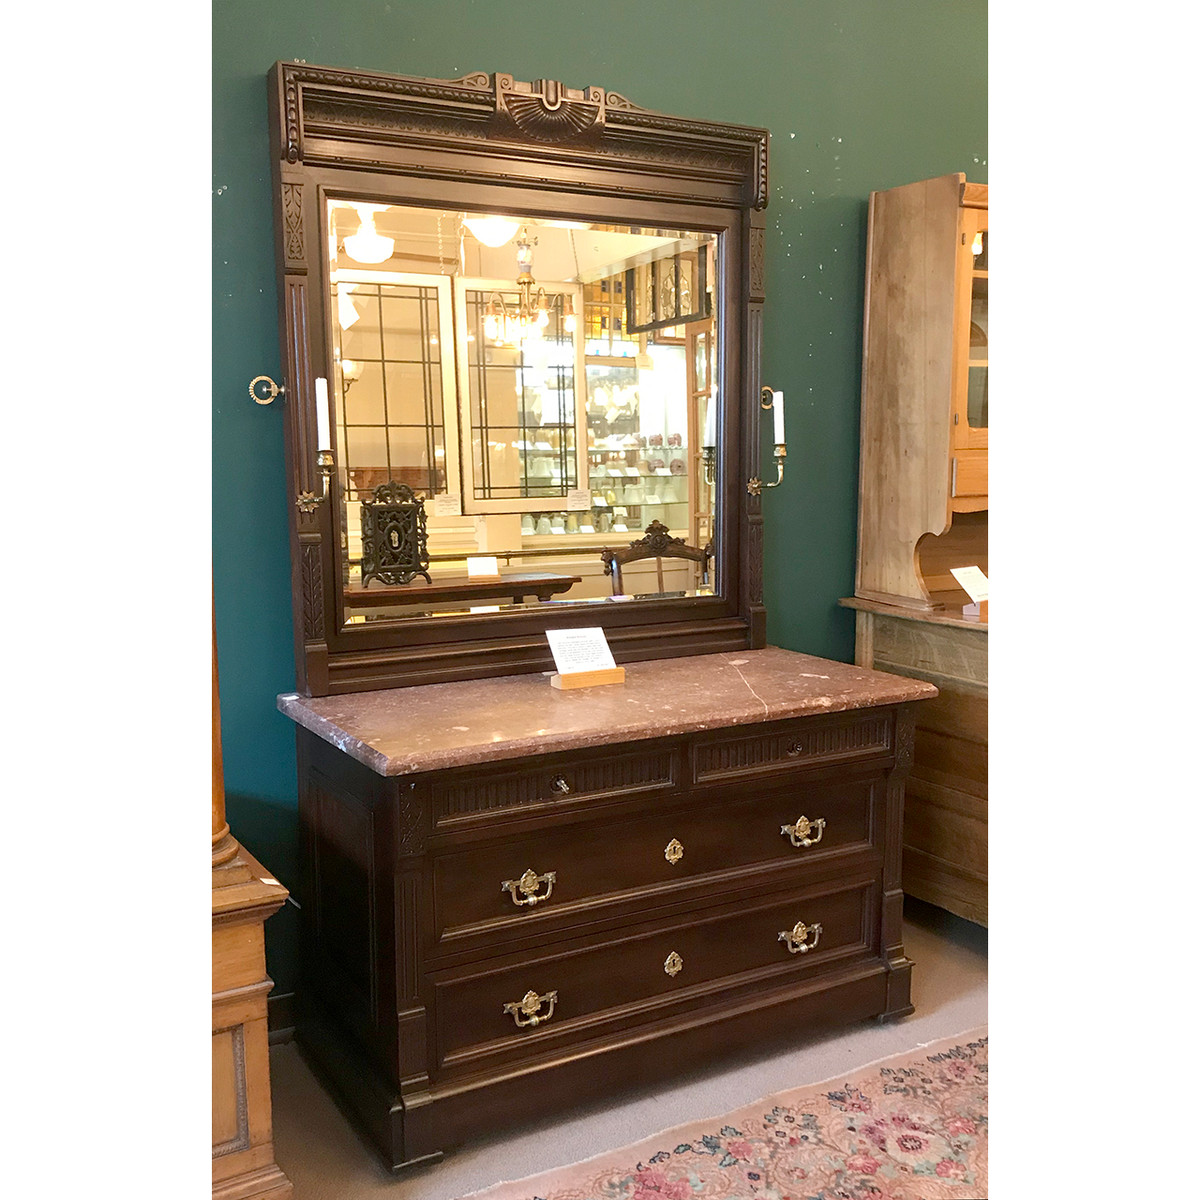 F19018 - Antique Late Victorian Mahogany Dresser with Marble Top and Beveled Mirror